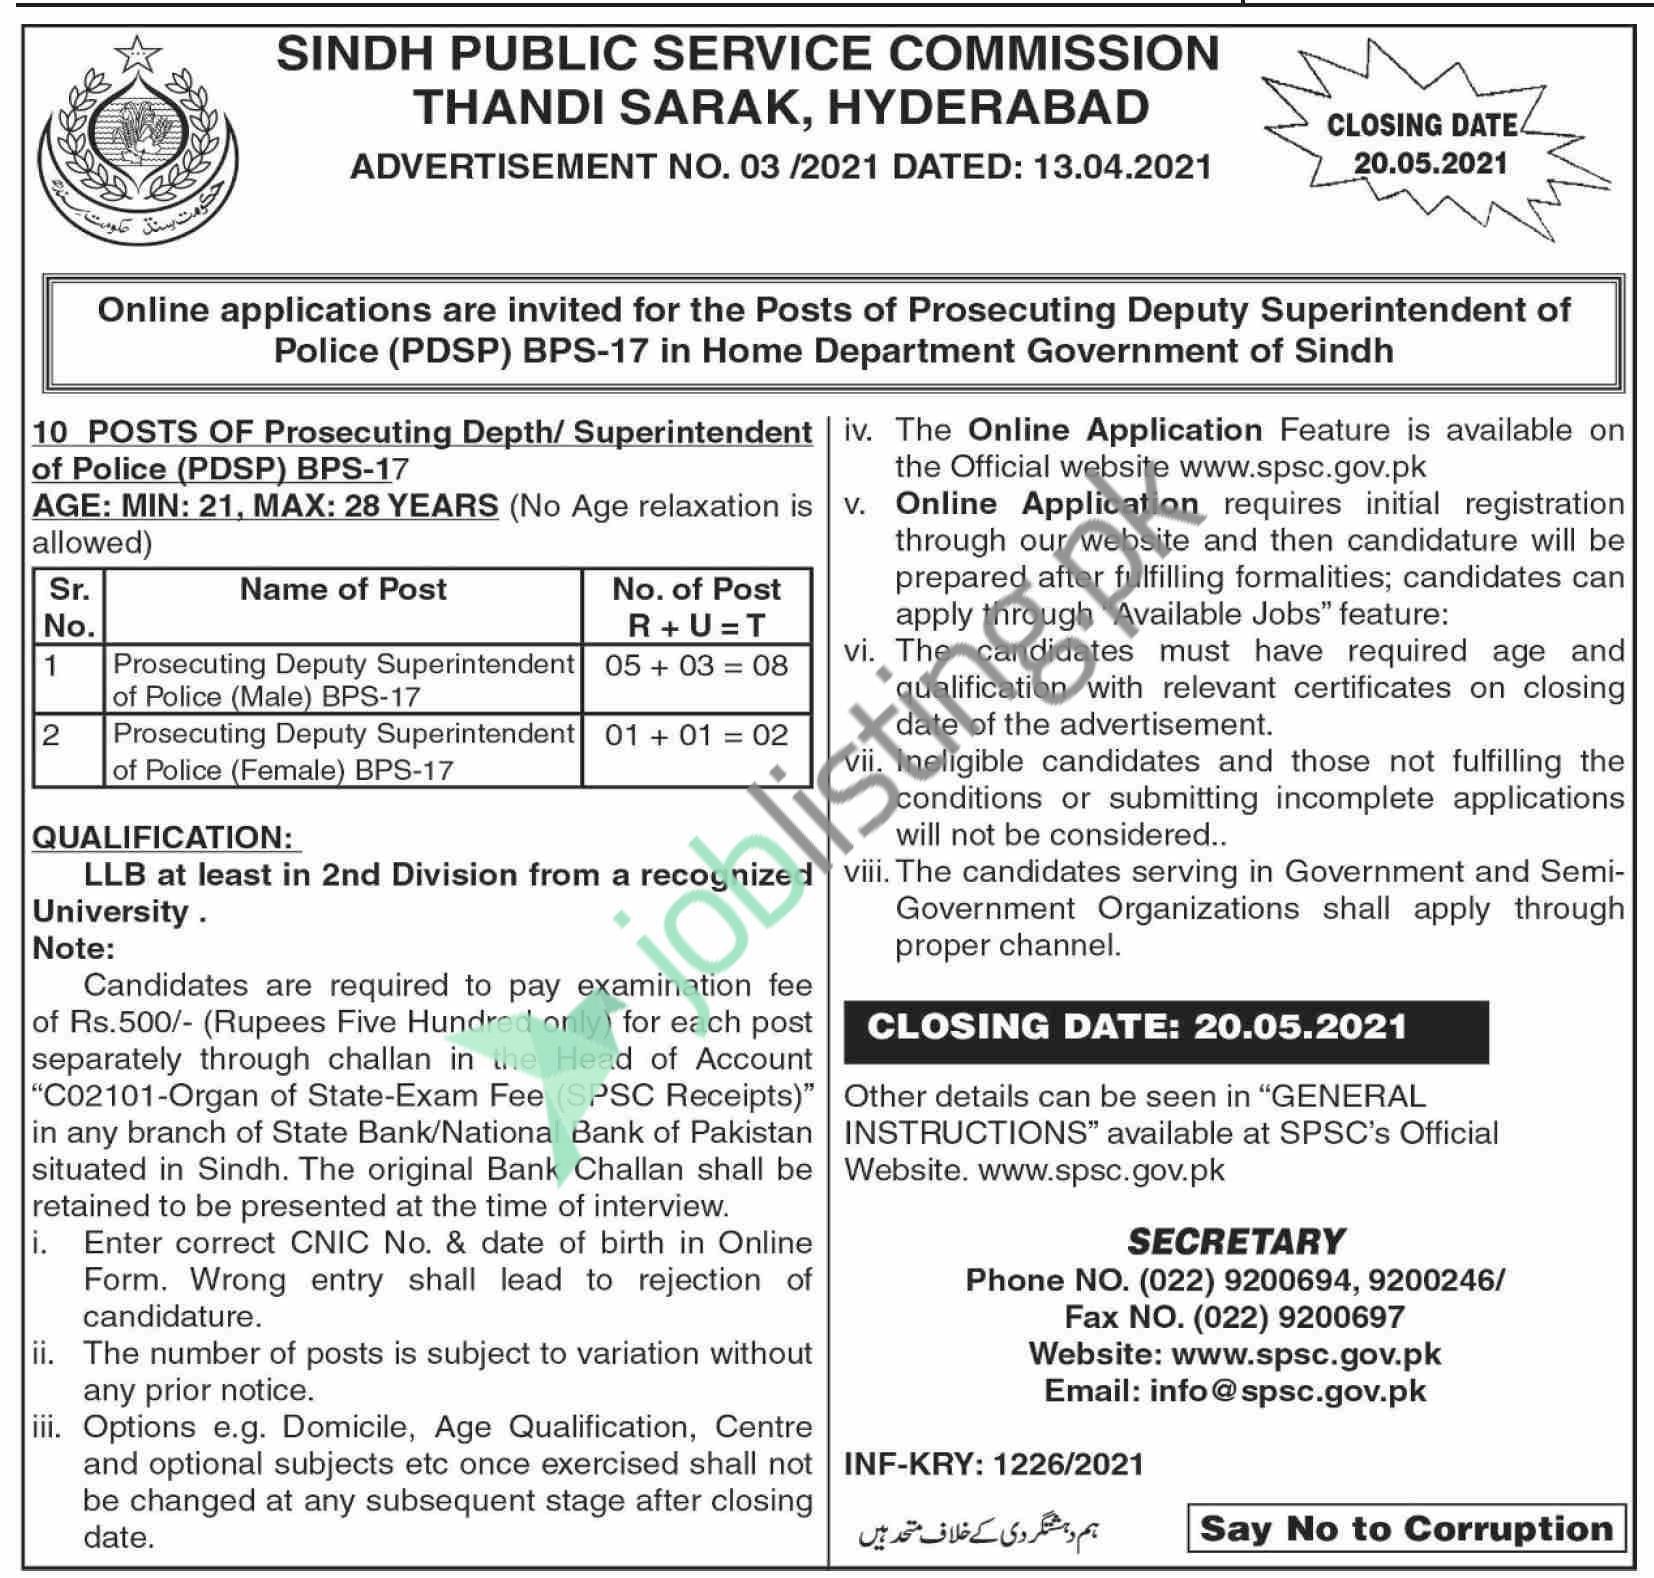 Prosecuting DSP Jobs in SPSC Sindh Public Service Commission